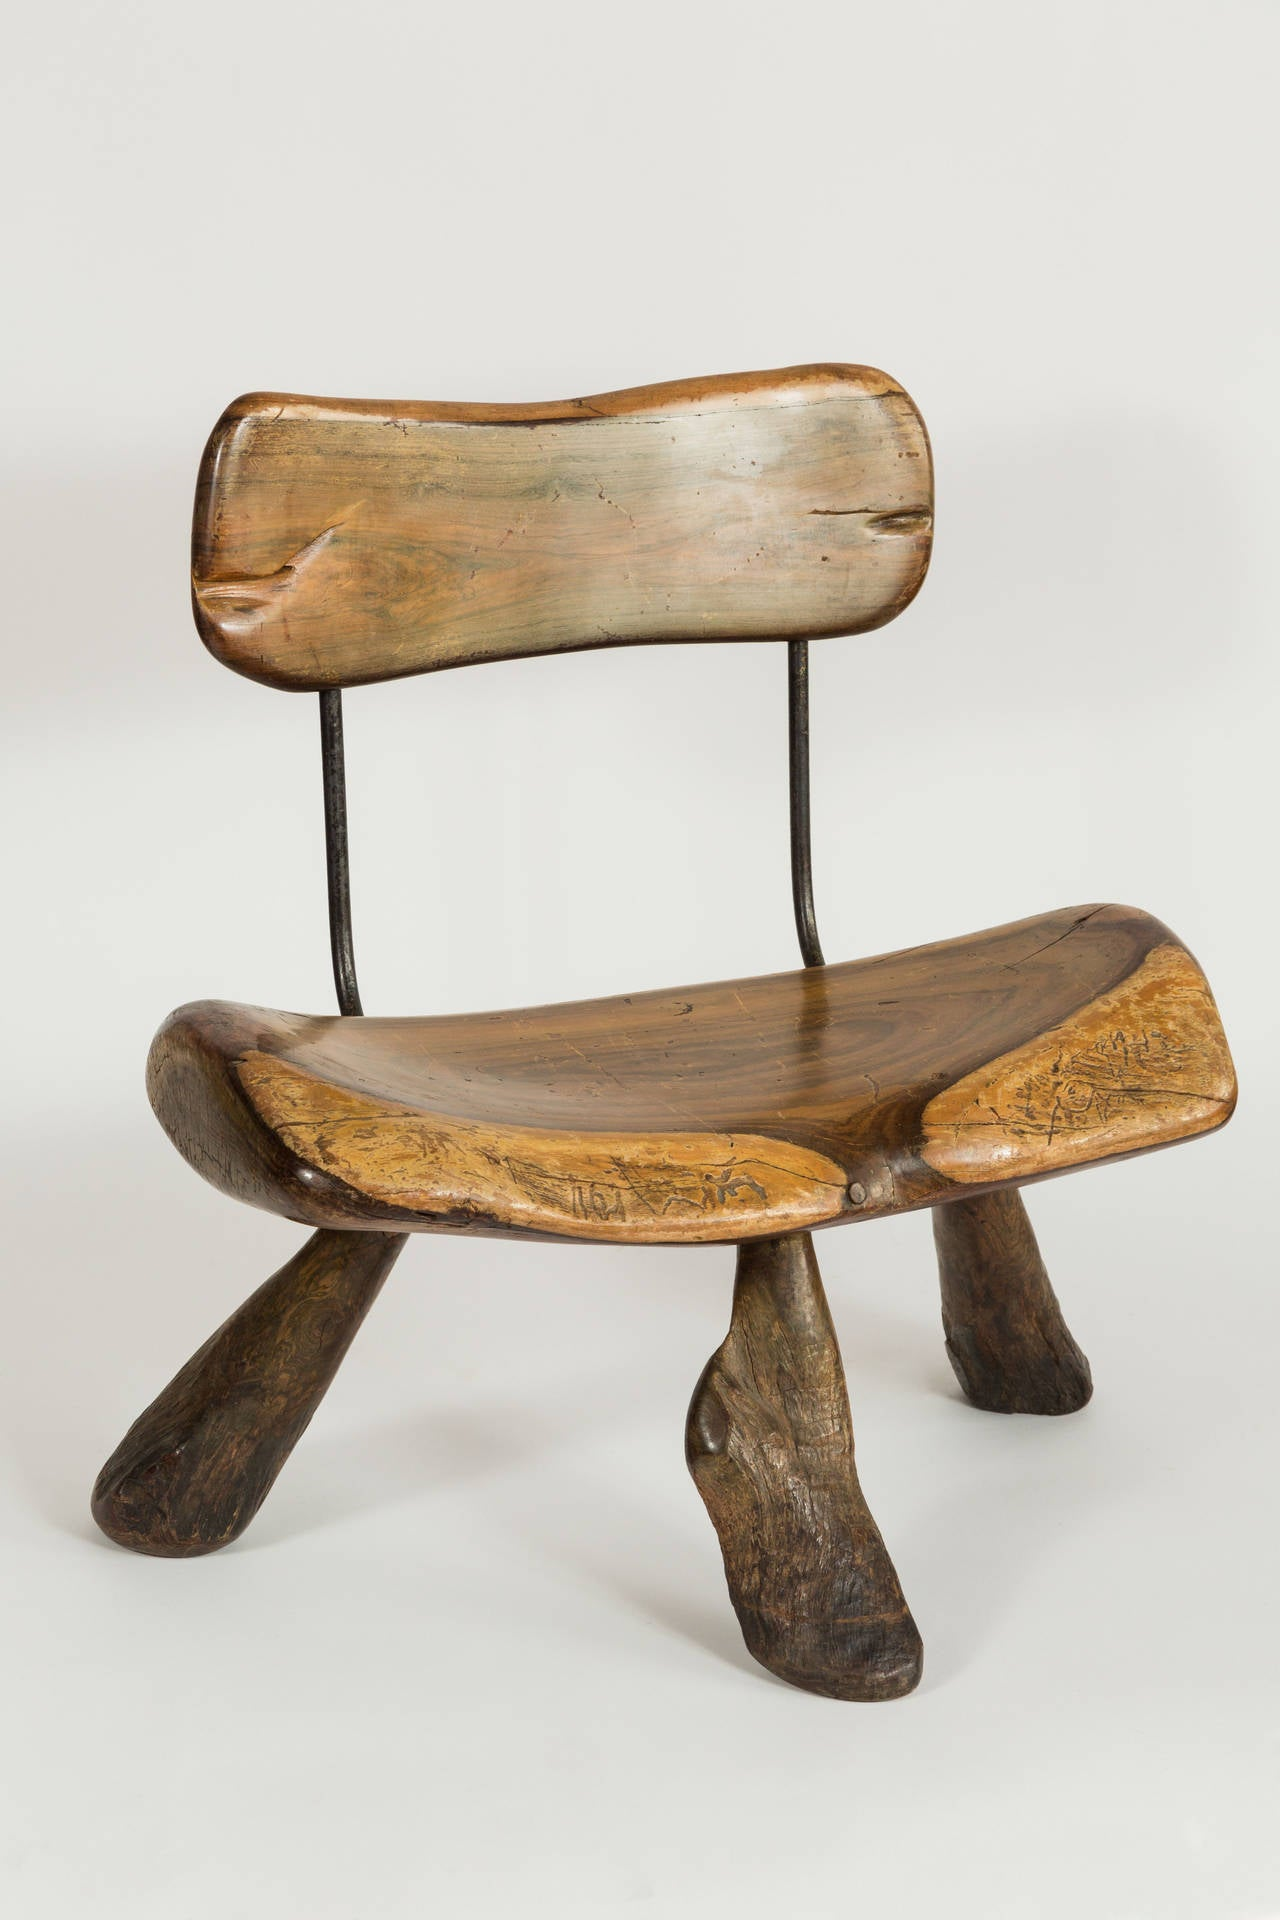 Handmade wood and iron chairs For Sale at 1stdibs